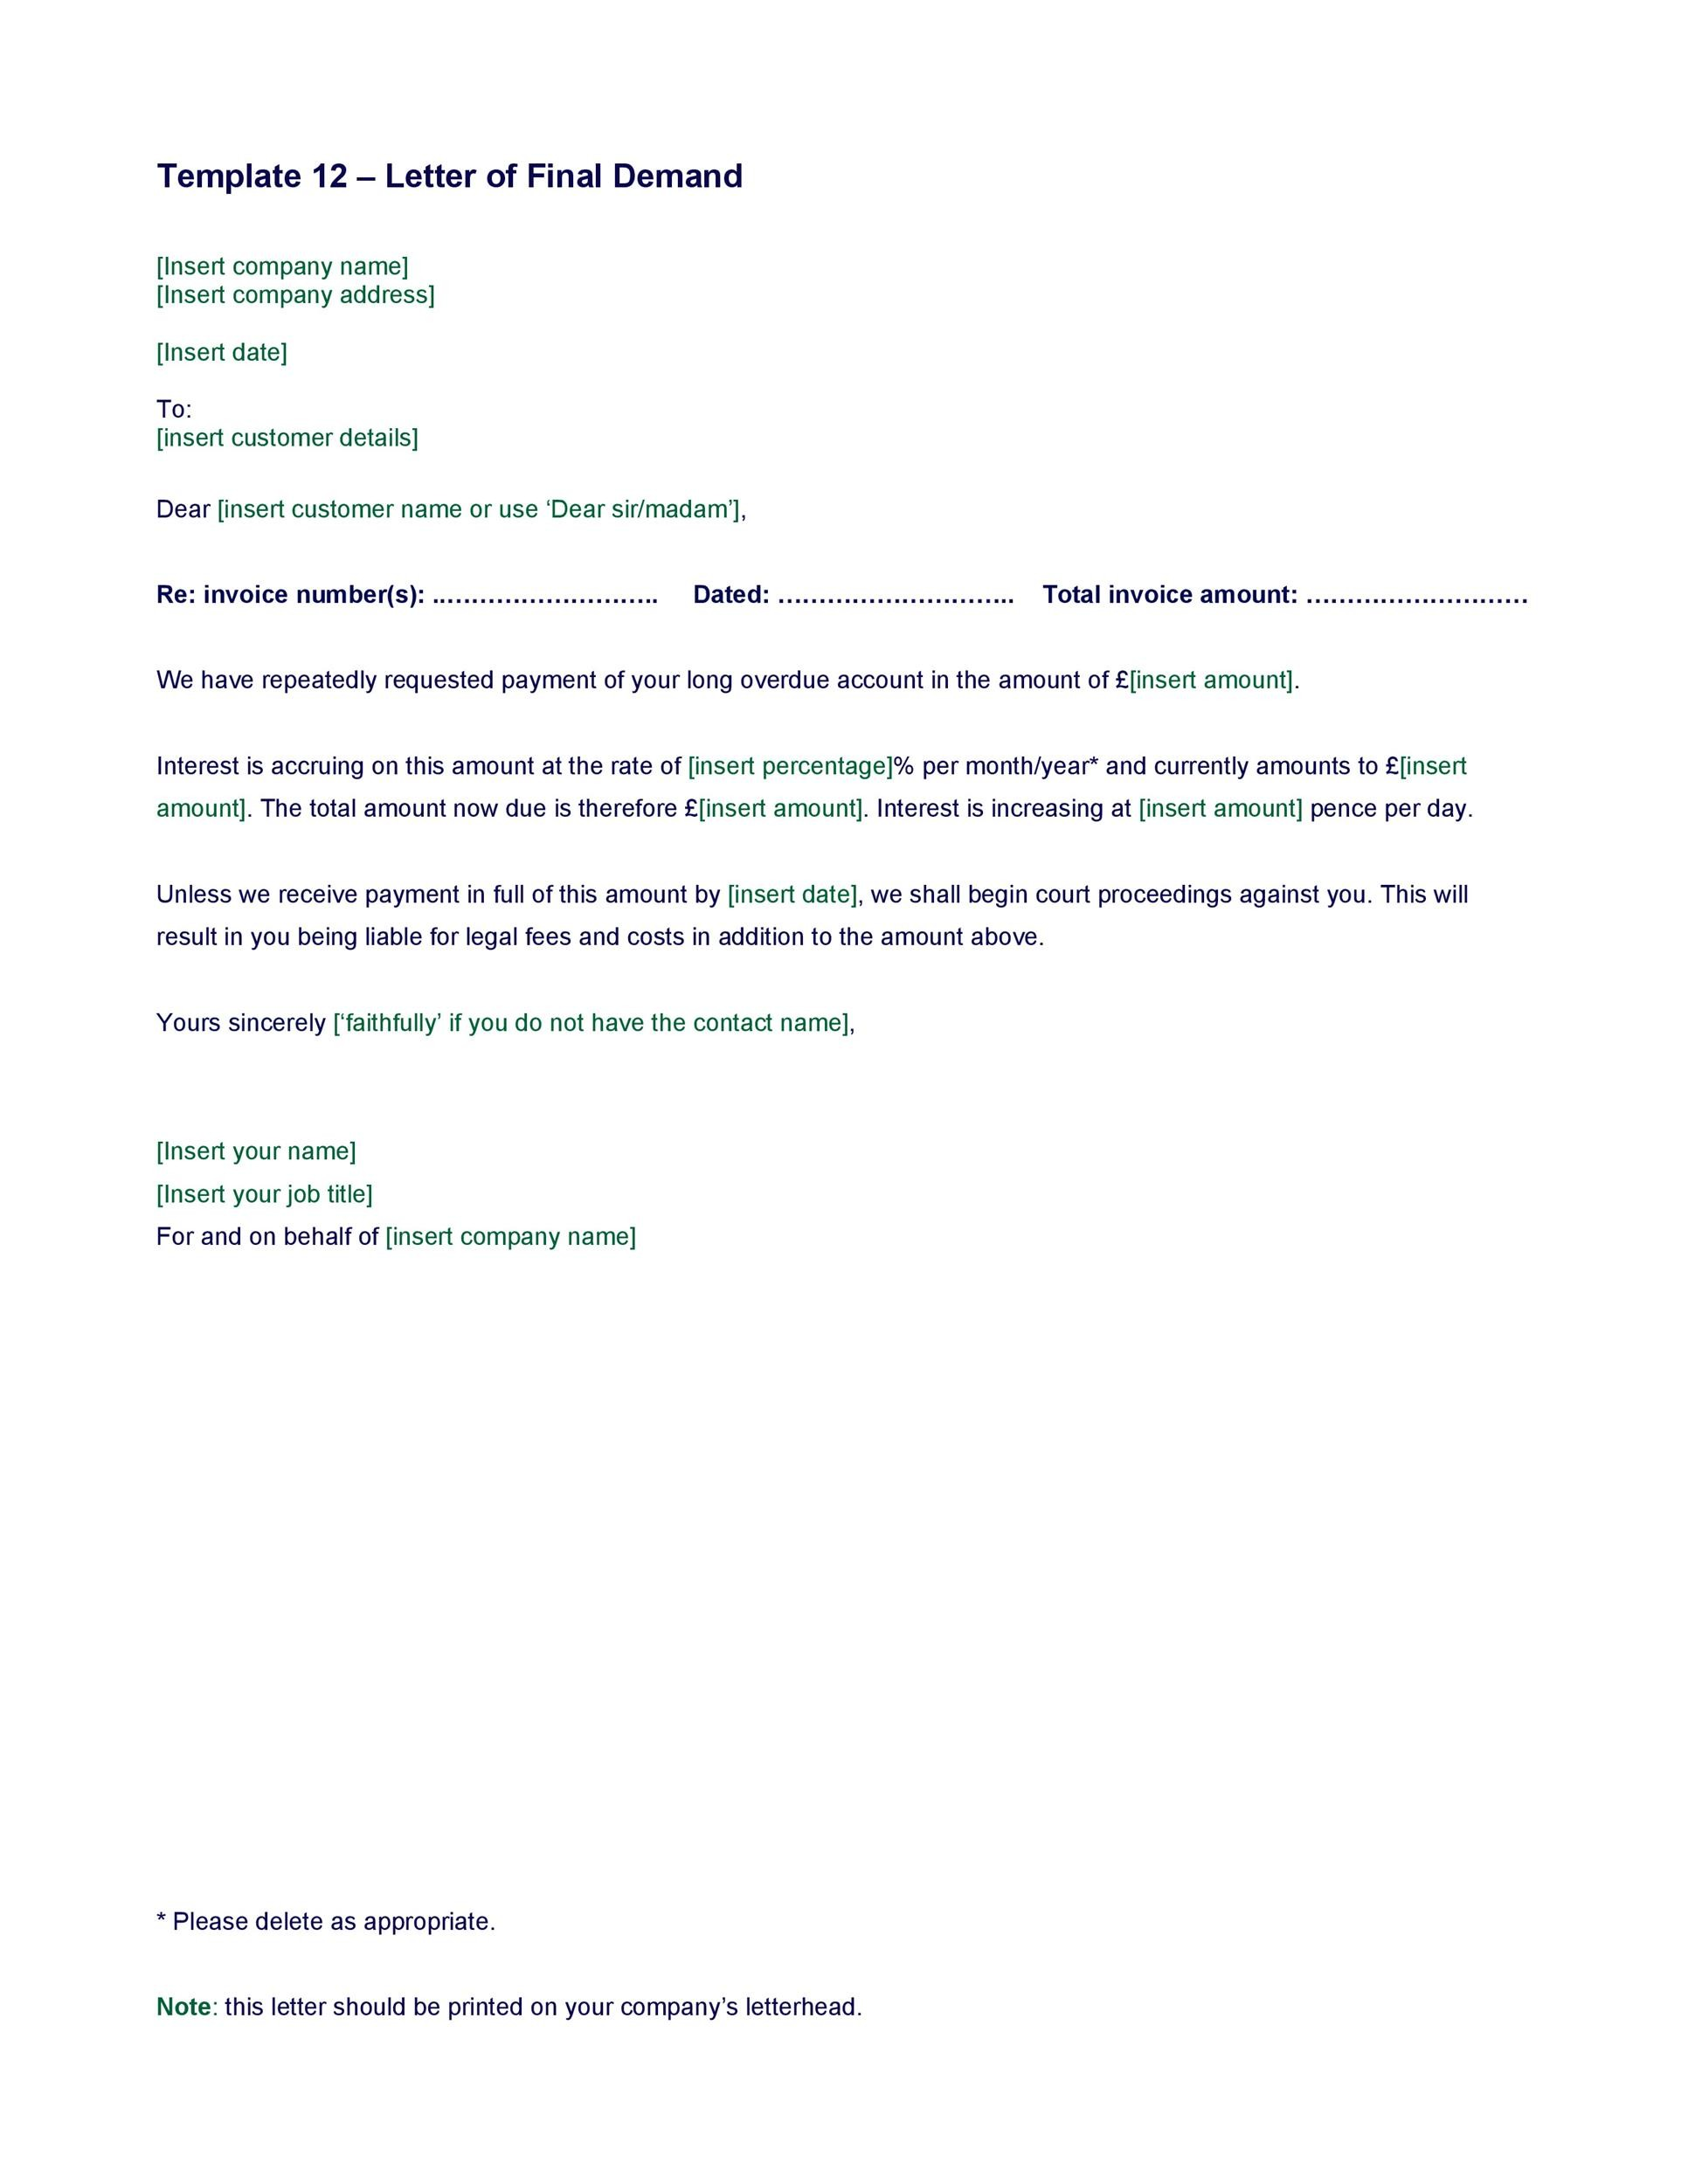 Demand-Letter-Template-03  Day Demand Letter Template To Return Auto Mobile on